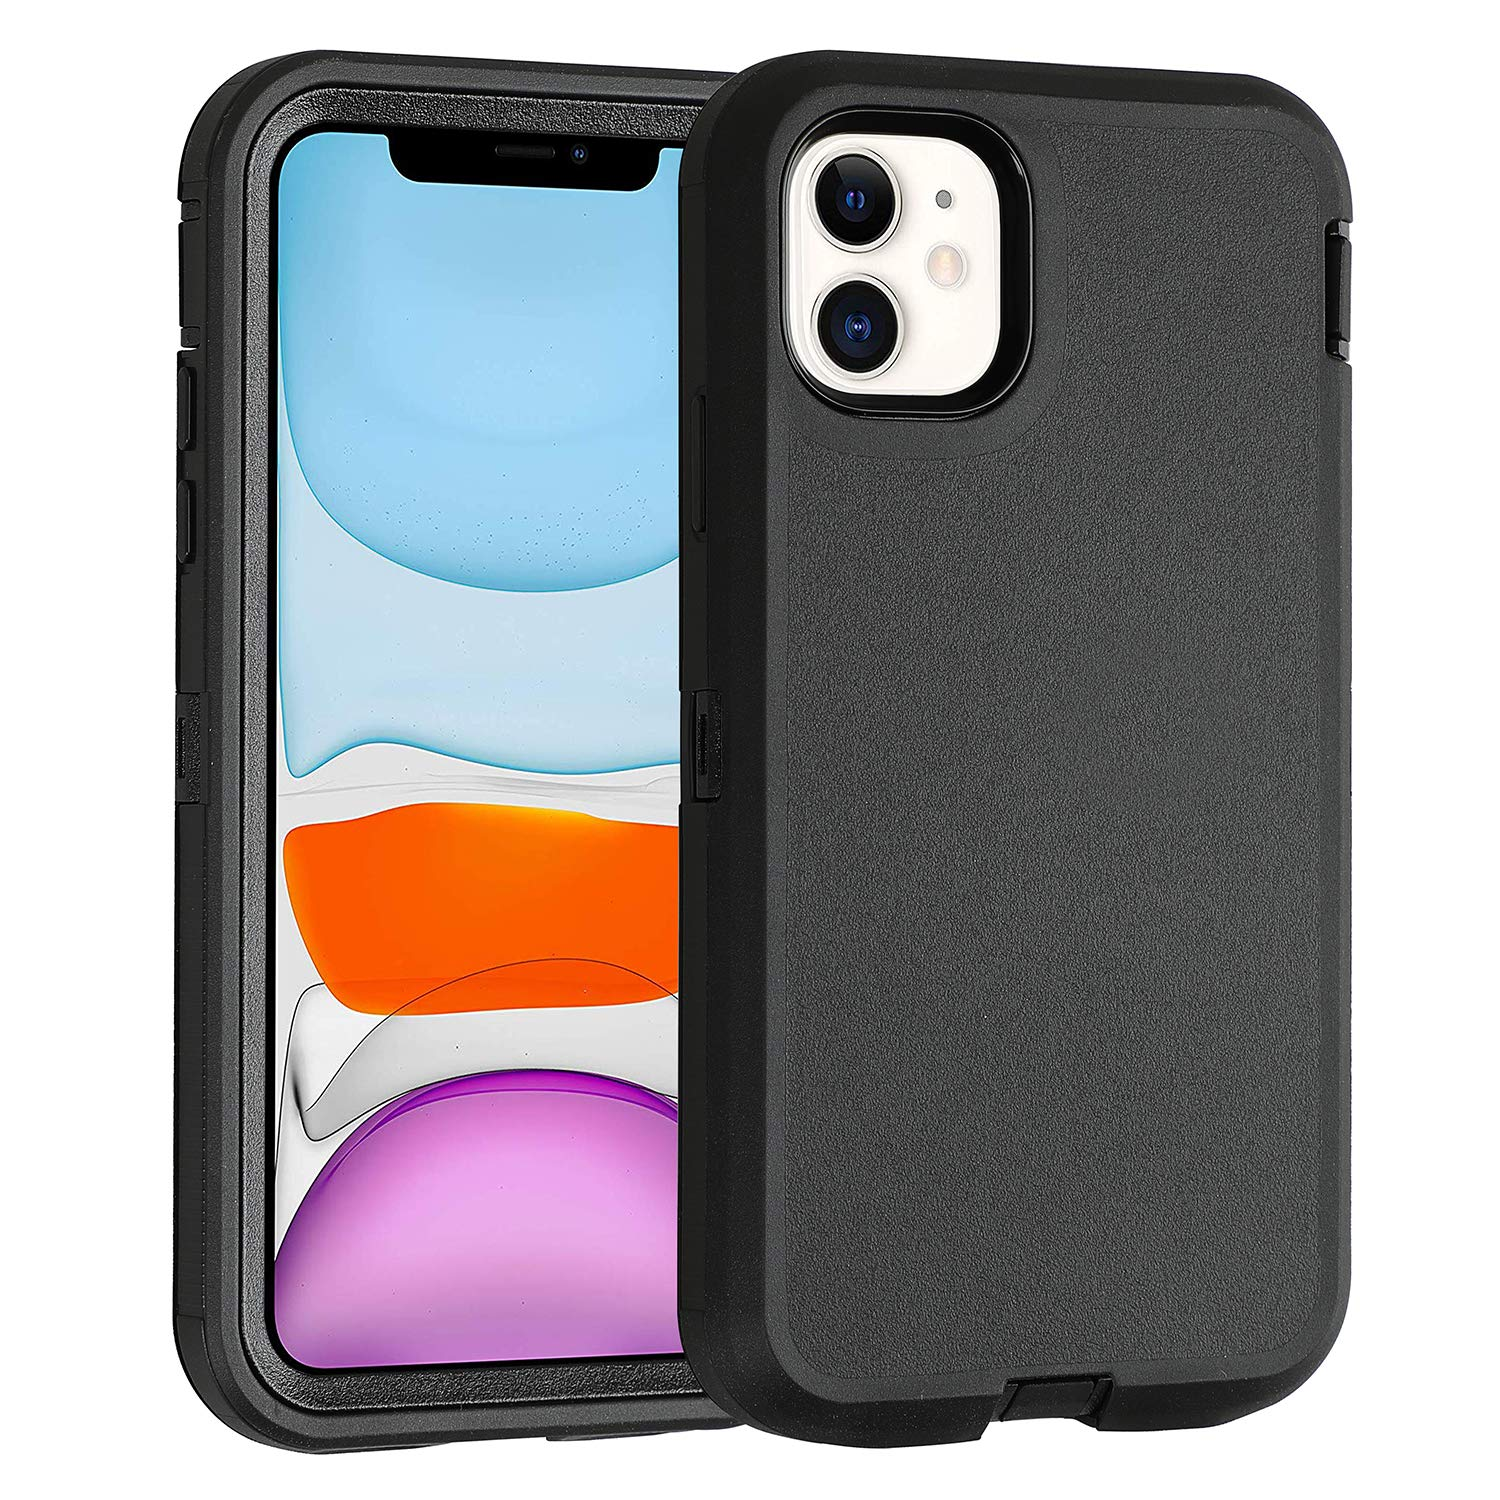 """iPhone 11 Case Co-Goldguard Heavy Duty Armor Rugged Cover Built-in Screen Protector Full Coverage 3 in 1 Reinforced Dust-Proof Shockproof Scratch Resistant Shell Compatible with iPhone 11 6.1"""" Black"""